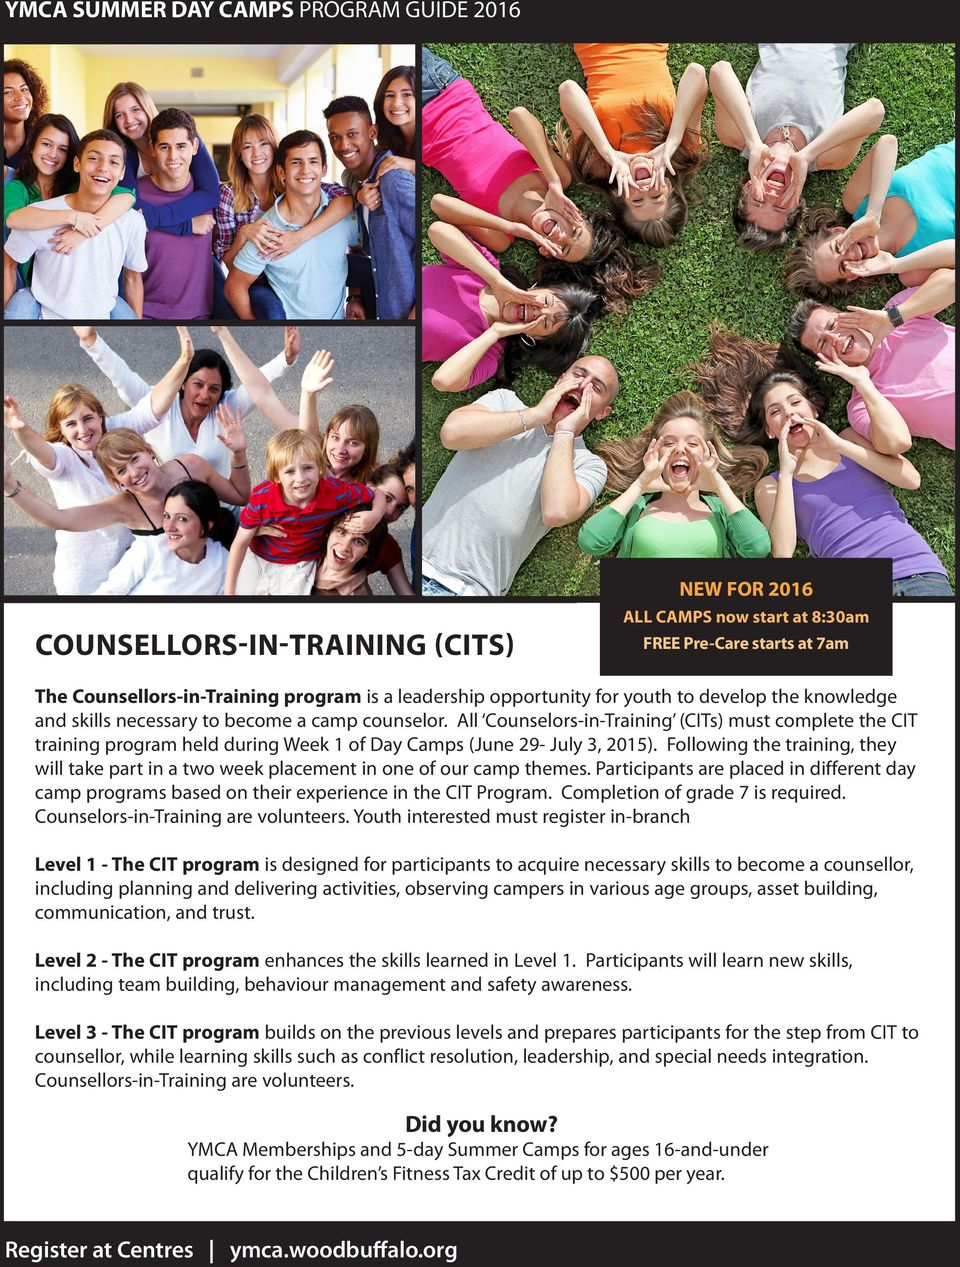 All Counselors-in-Training (CITs) must complete the CIT training program held during Week 1 of Day Camps (June 29- July 3, 2015).